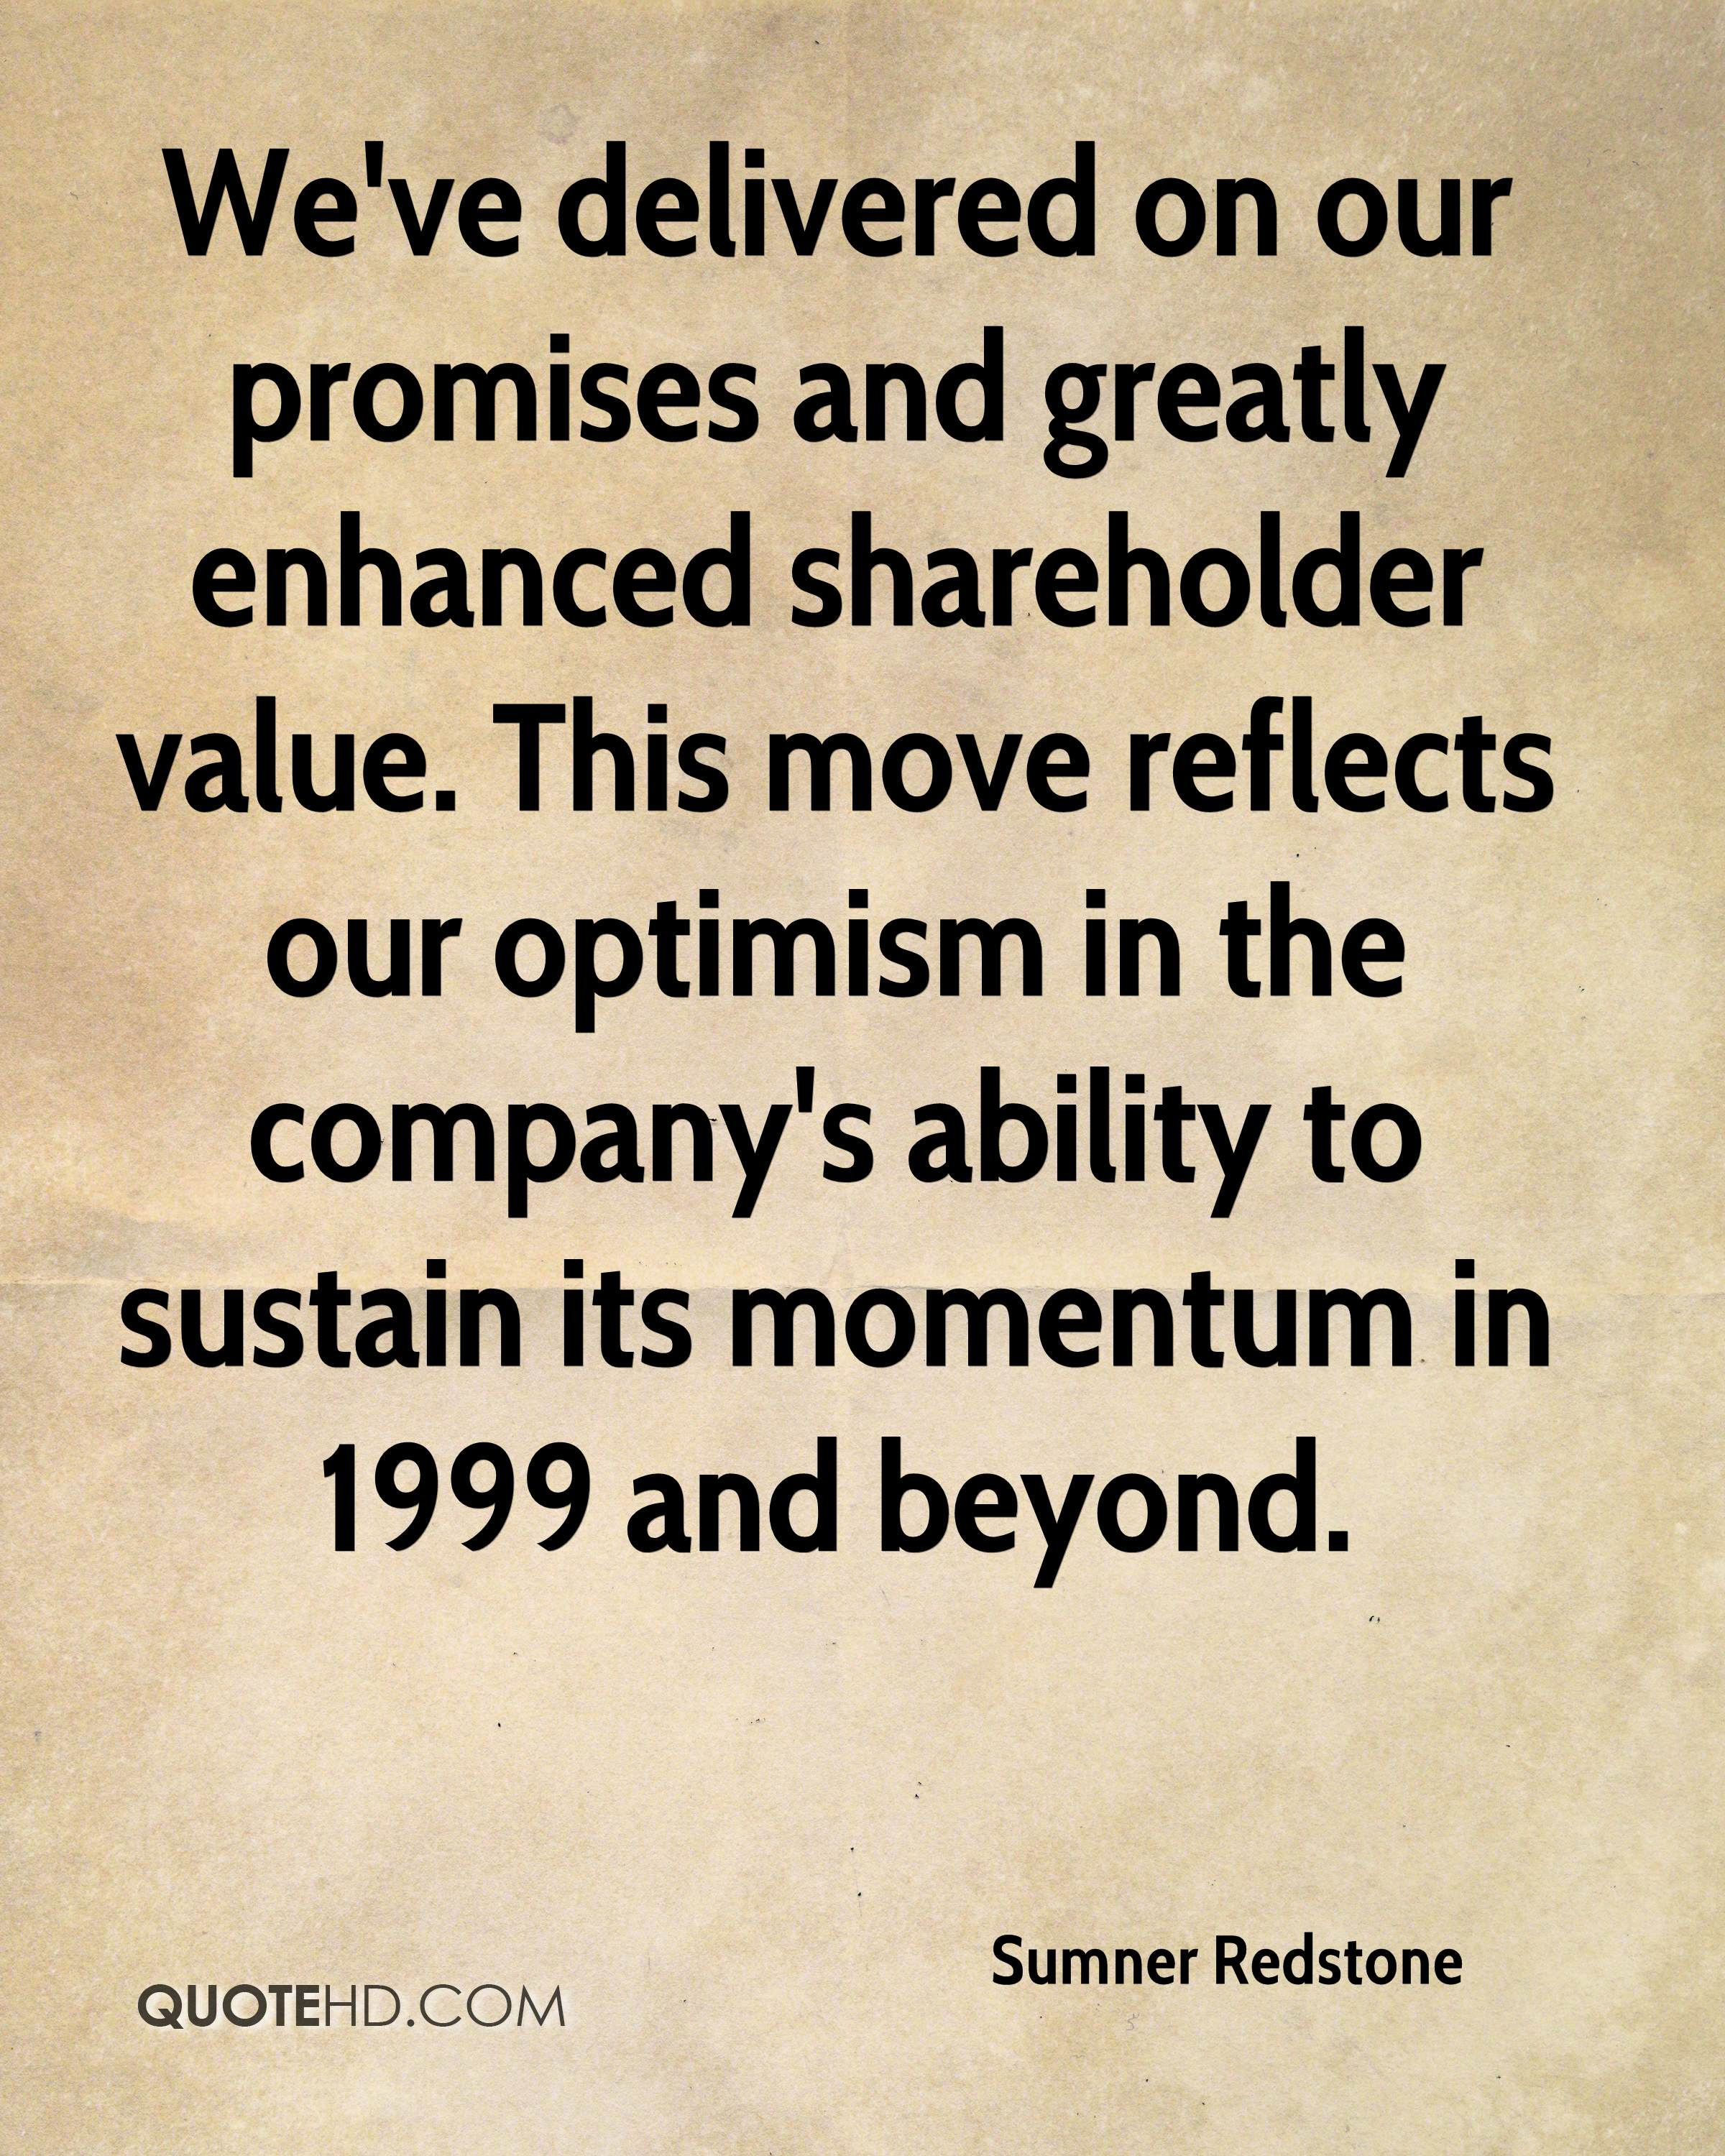 We've delivered on our promises and greatly enhanced shareholder value. This move reflects our optimism in the company's ability to sustain its momentum in 1999 and beyond.